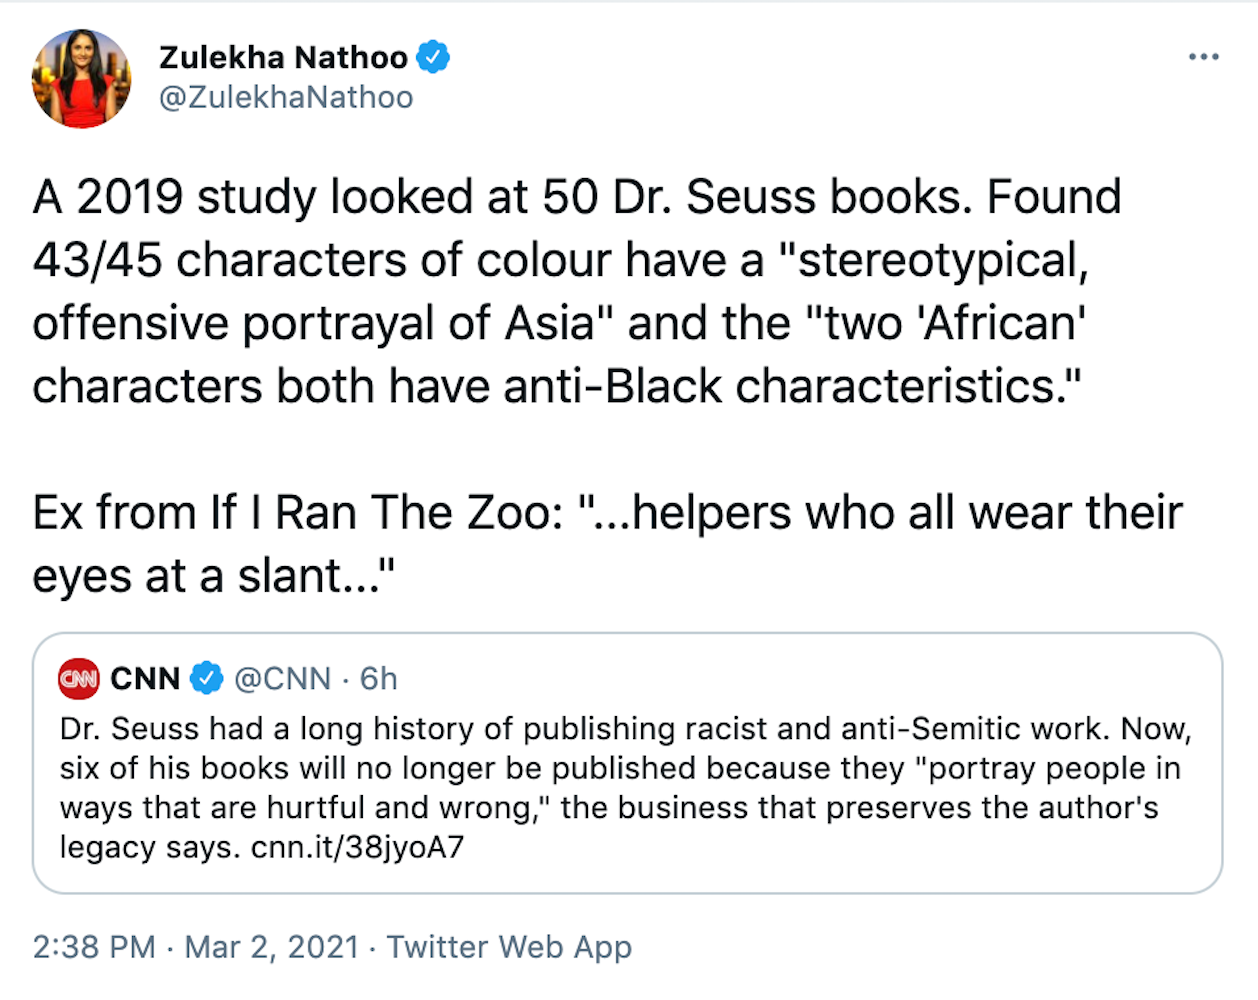 """A 2019 study looked at 50 Dr. Seuss books. Found 43/45 characters of colour have a """"stereotypical, offensive portrayal of Asia"""" and the """"two 'African' characters both have anti-Black characteristics."""" Ex from If I Ran The Zoo: """"...helpers who all wear their eyes at a slant..."""""""